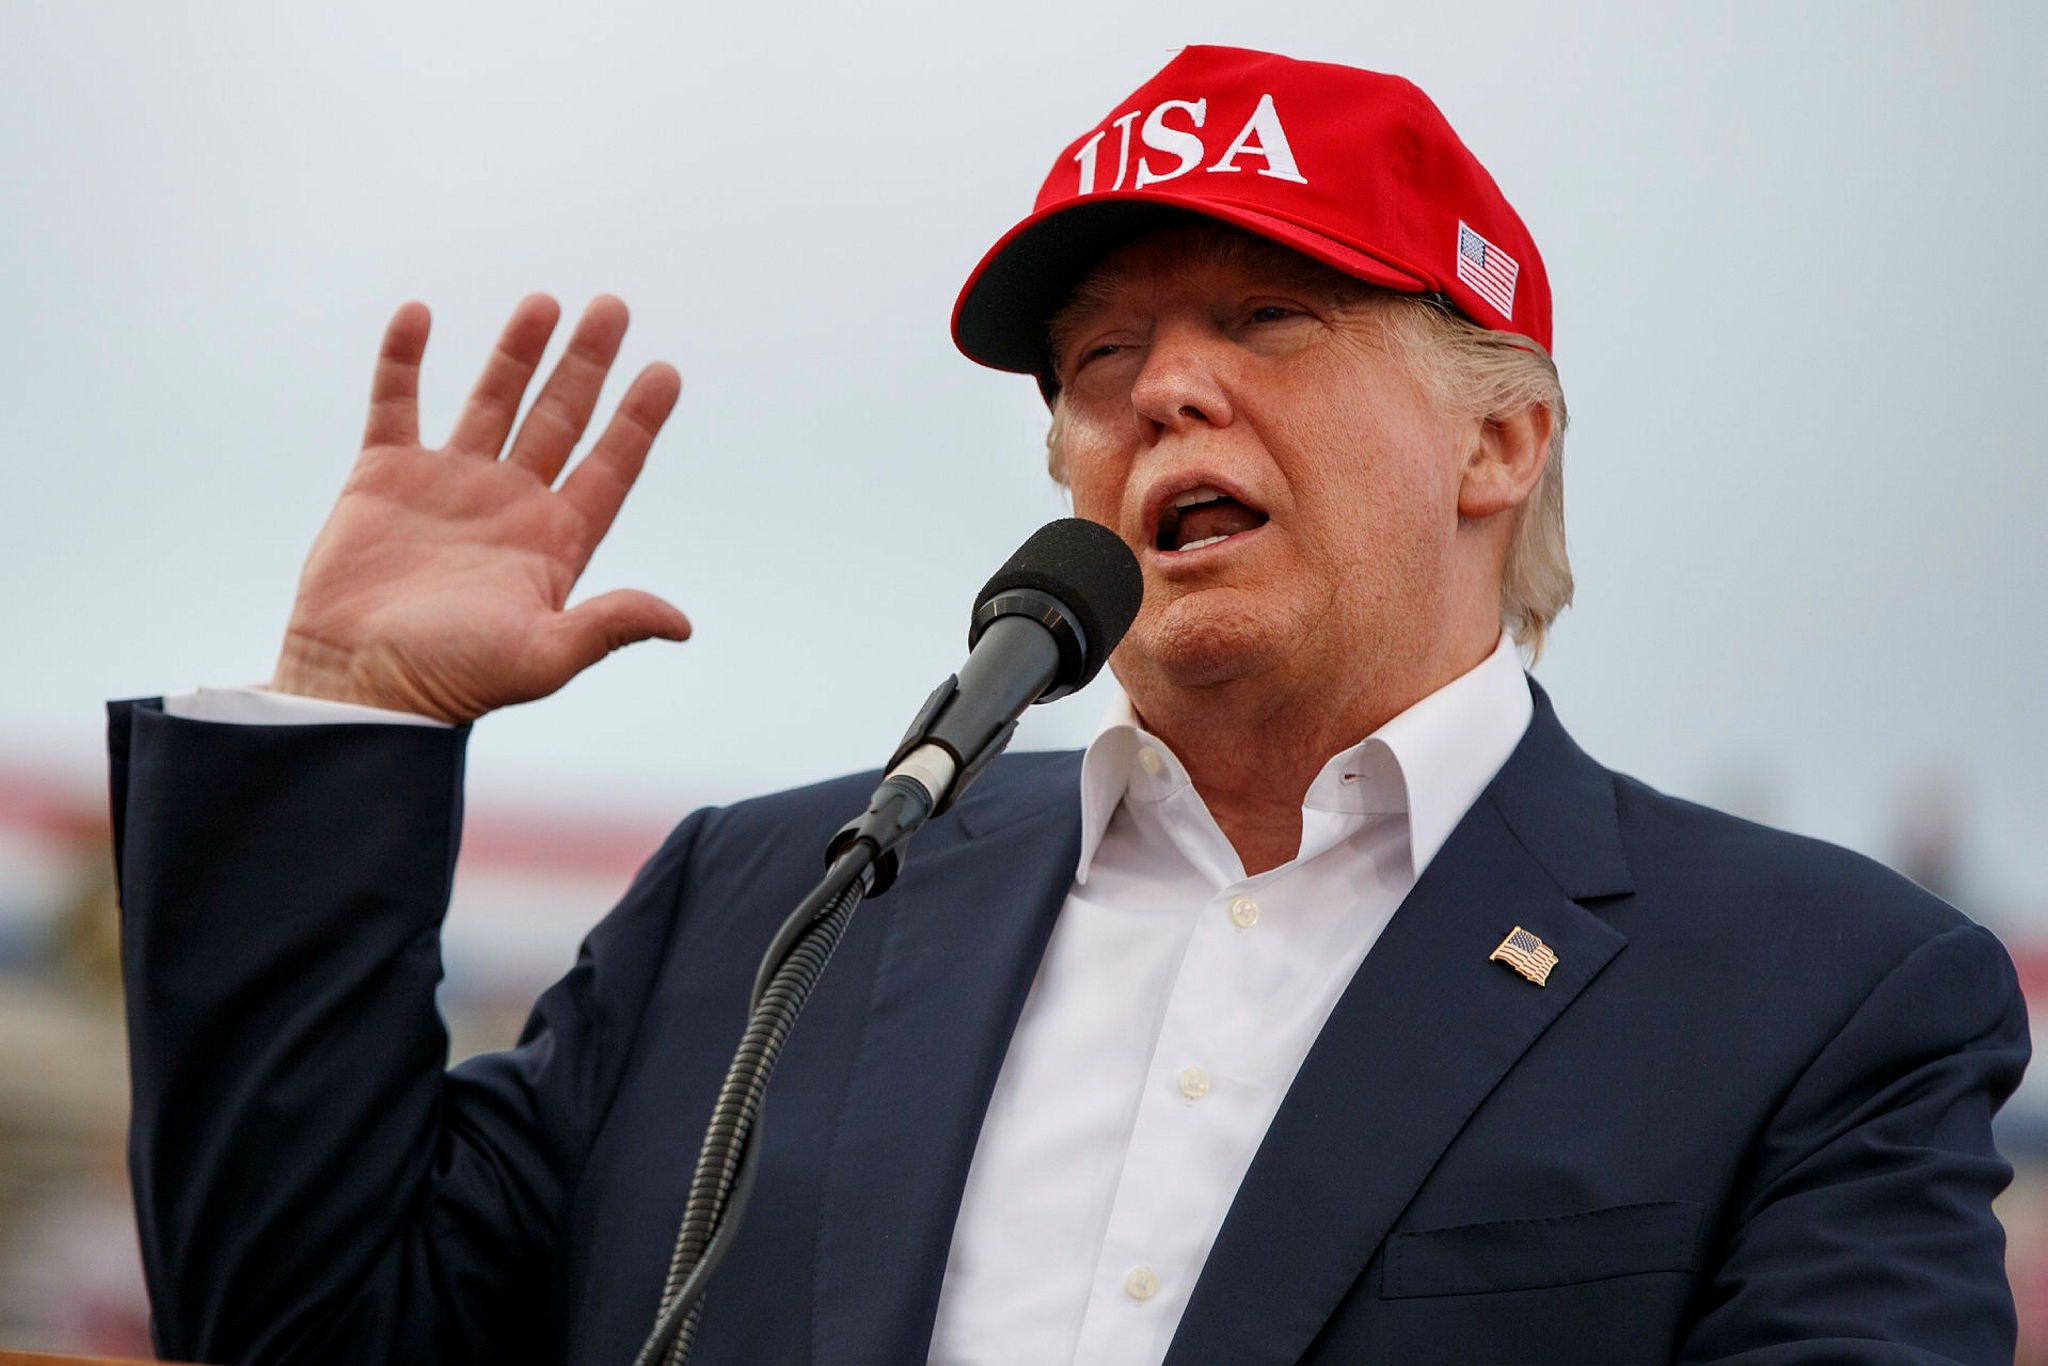 FIn this Saturday, Dec. 17, 2016 file photo, then-President-elect Donald Trump speaks during a rally at Ladd-Peebles Stadium in Mobile, Alabama (AP Photo)